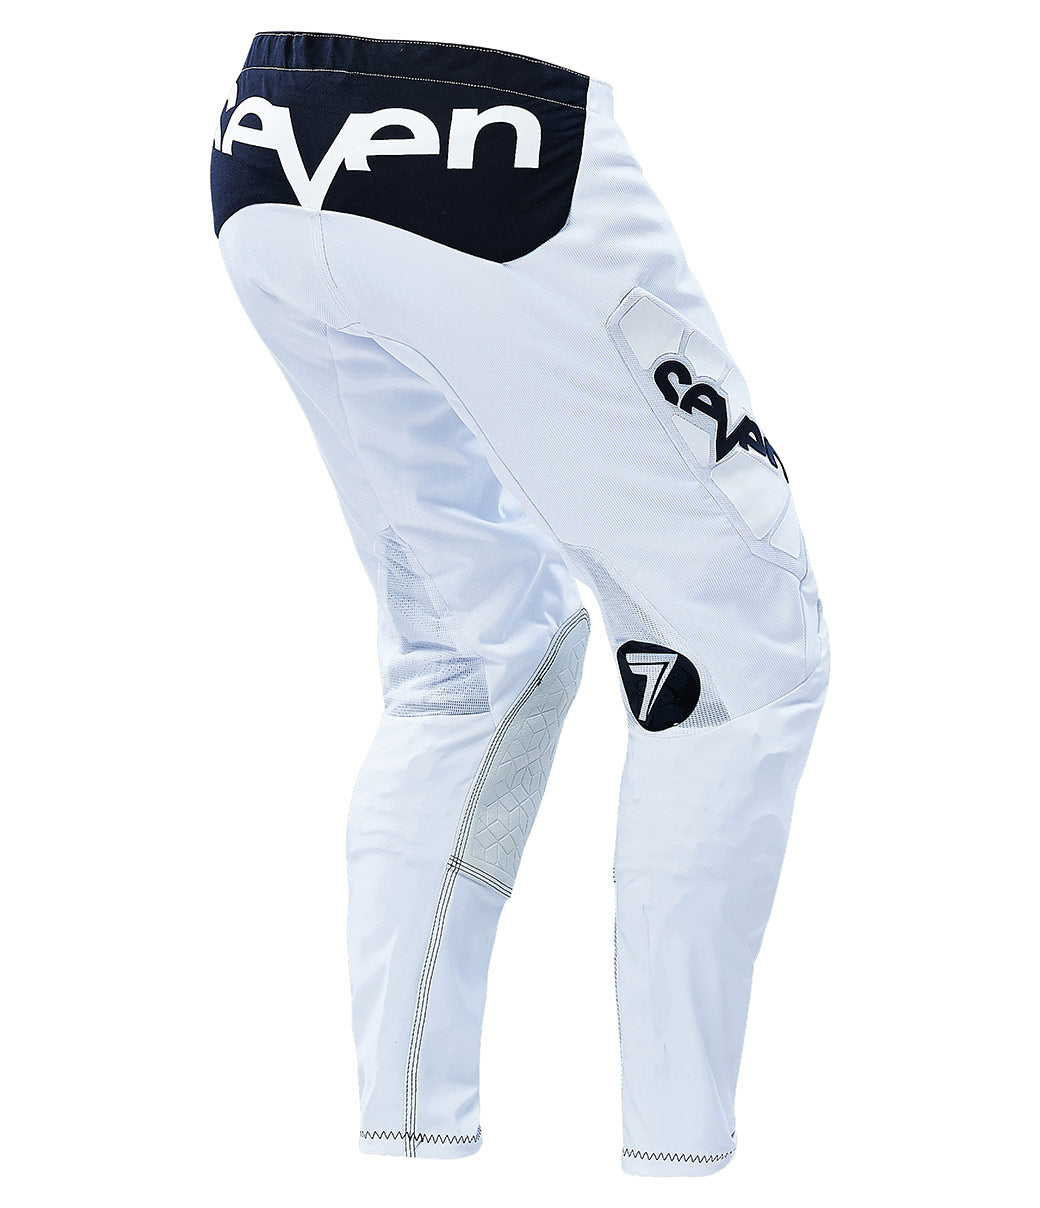 Annex Staple Pant - White